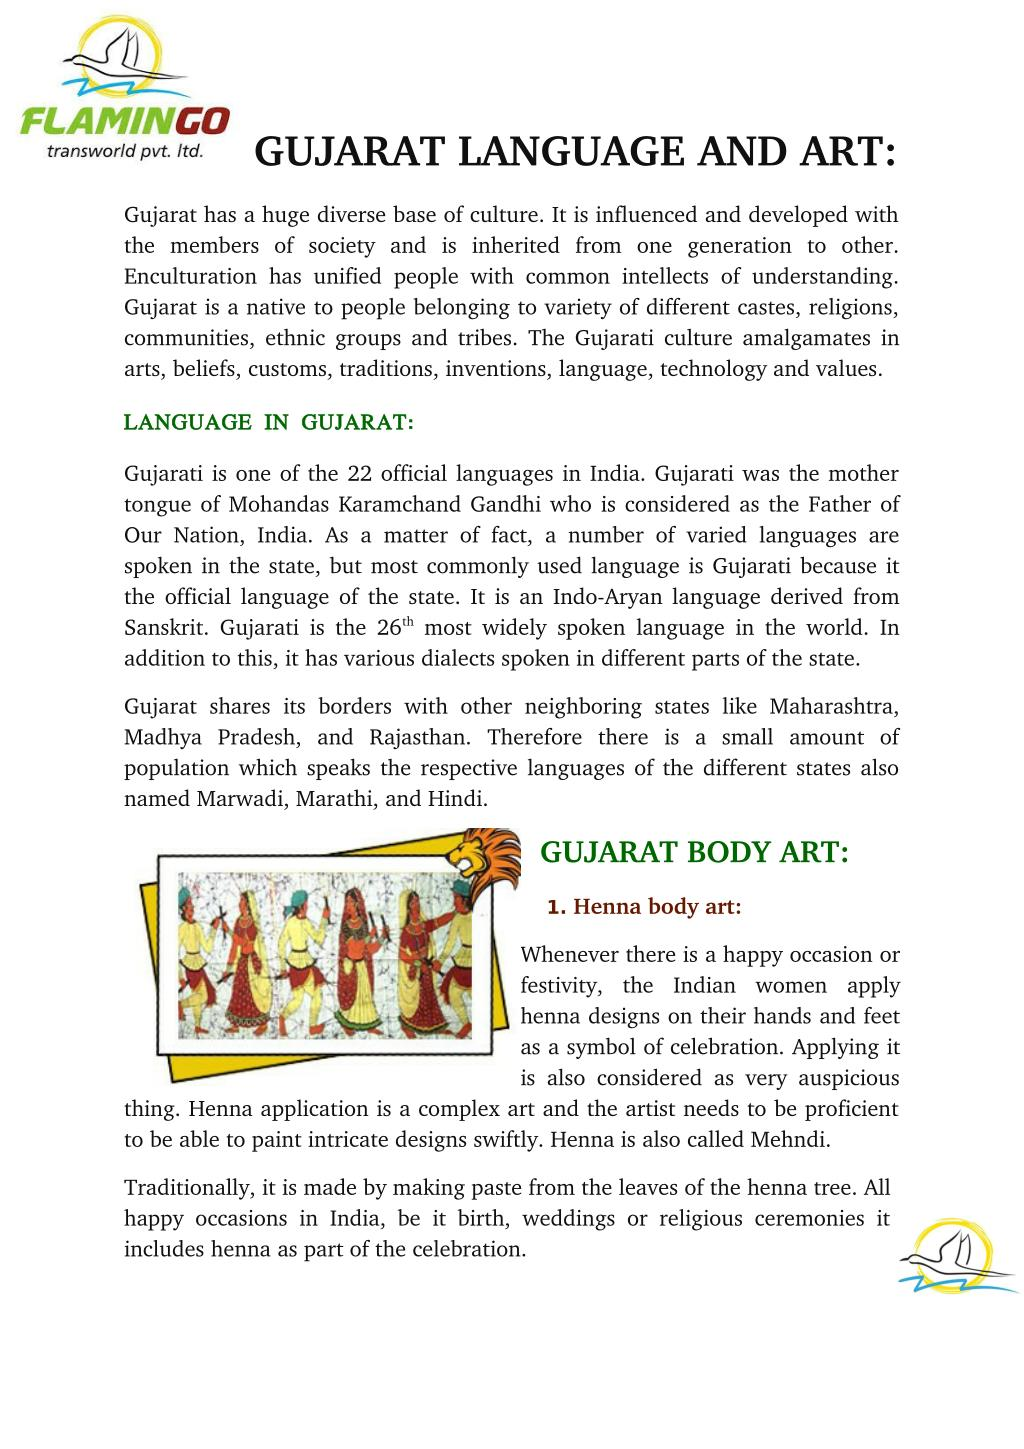 PPT - Gujarat language and art PowerPoint Presentation - ID:7198169